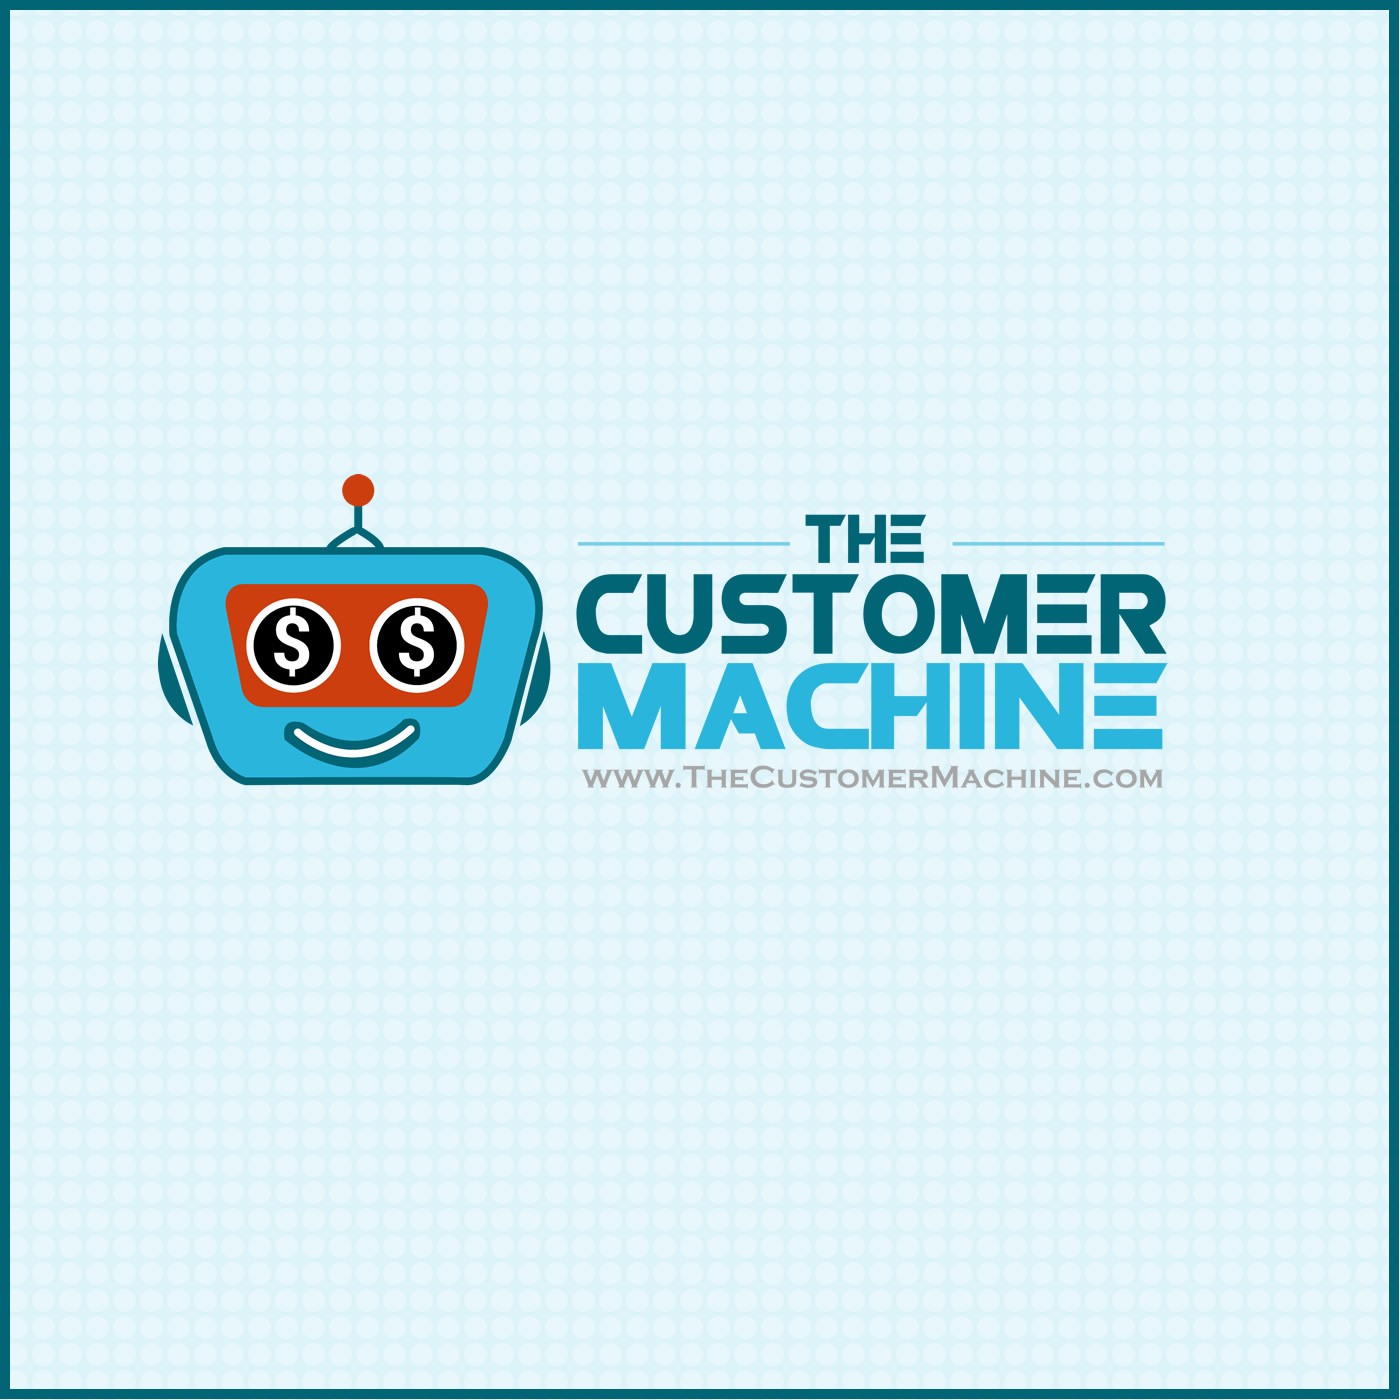 The Customer Machine - Build Automated Online Marketing Systems to Attract and Convert the Best Prospects